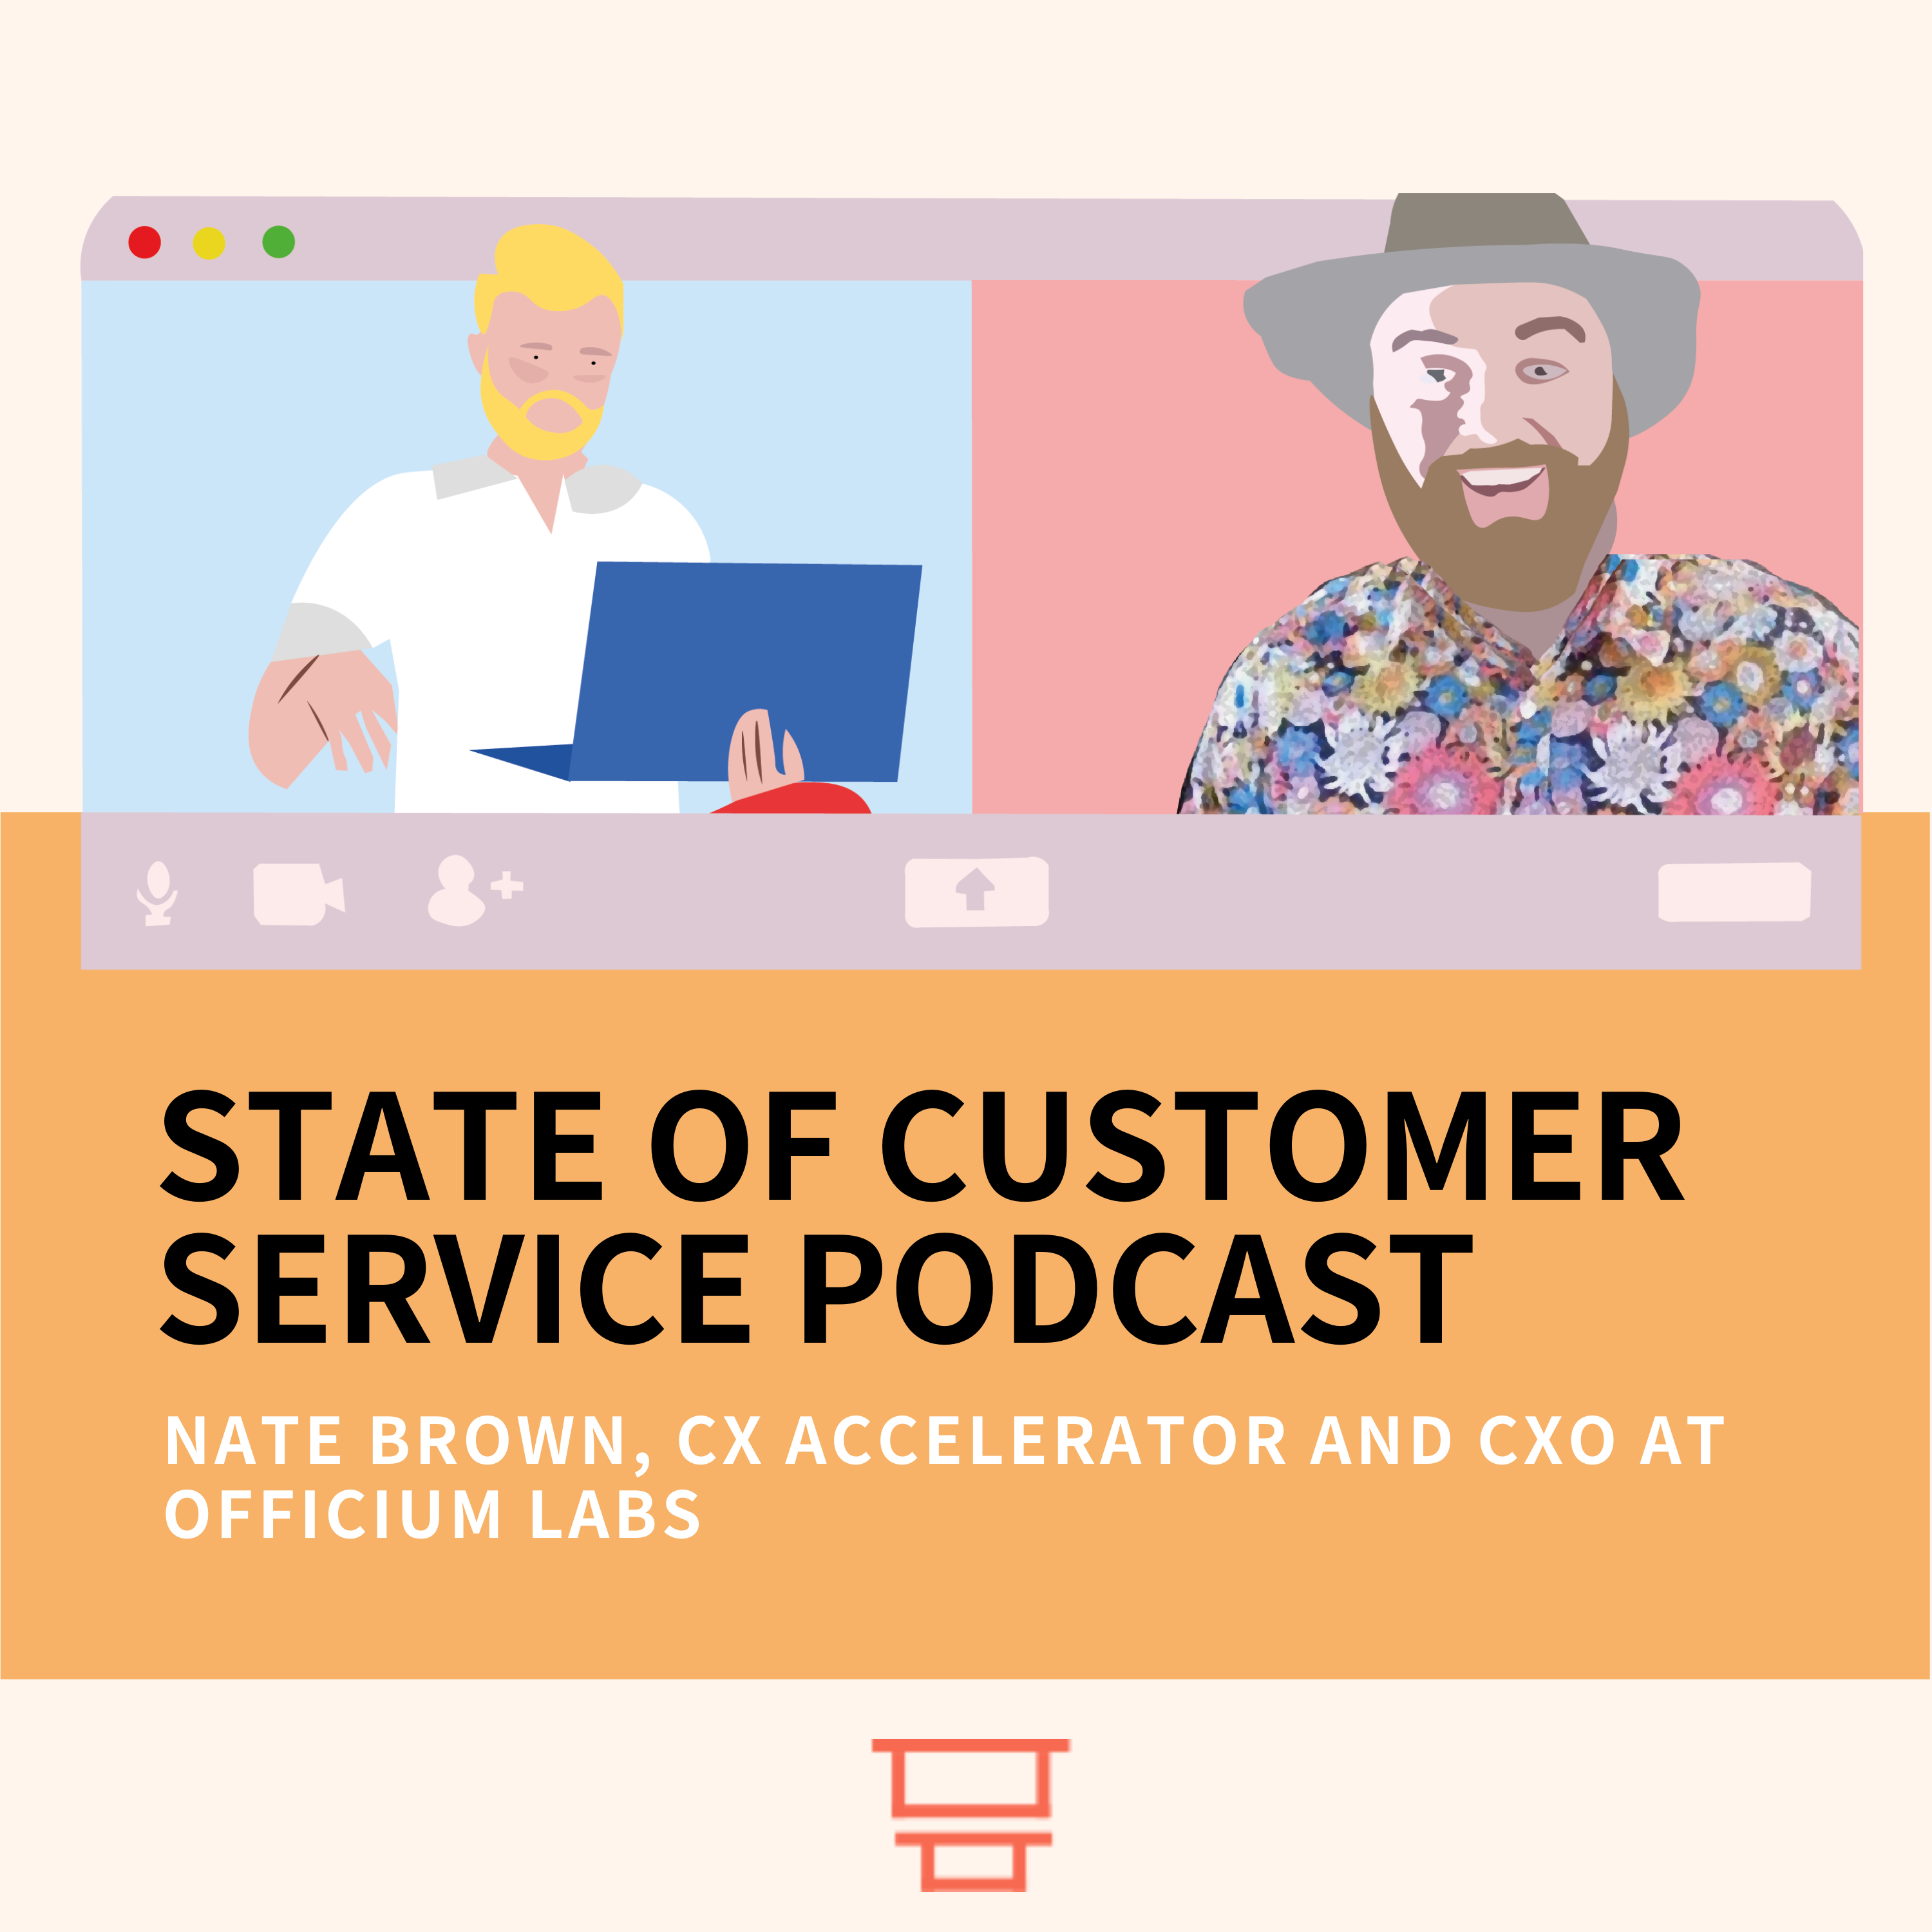 Nate Brown, Founder at CX Accelerator and CXO at Officium Labs